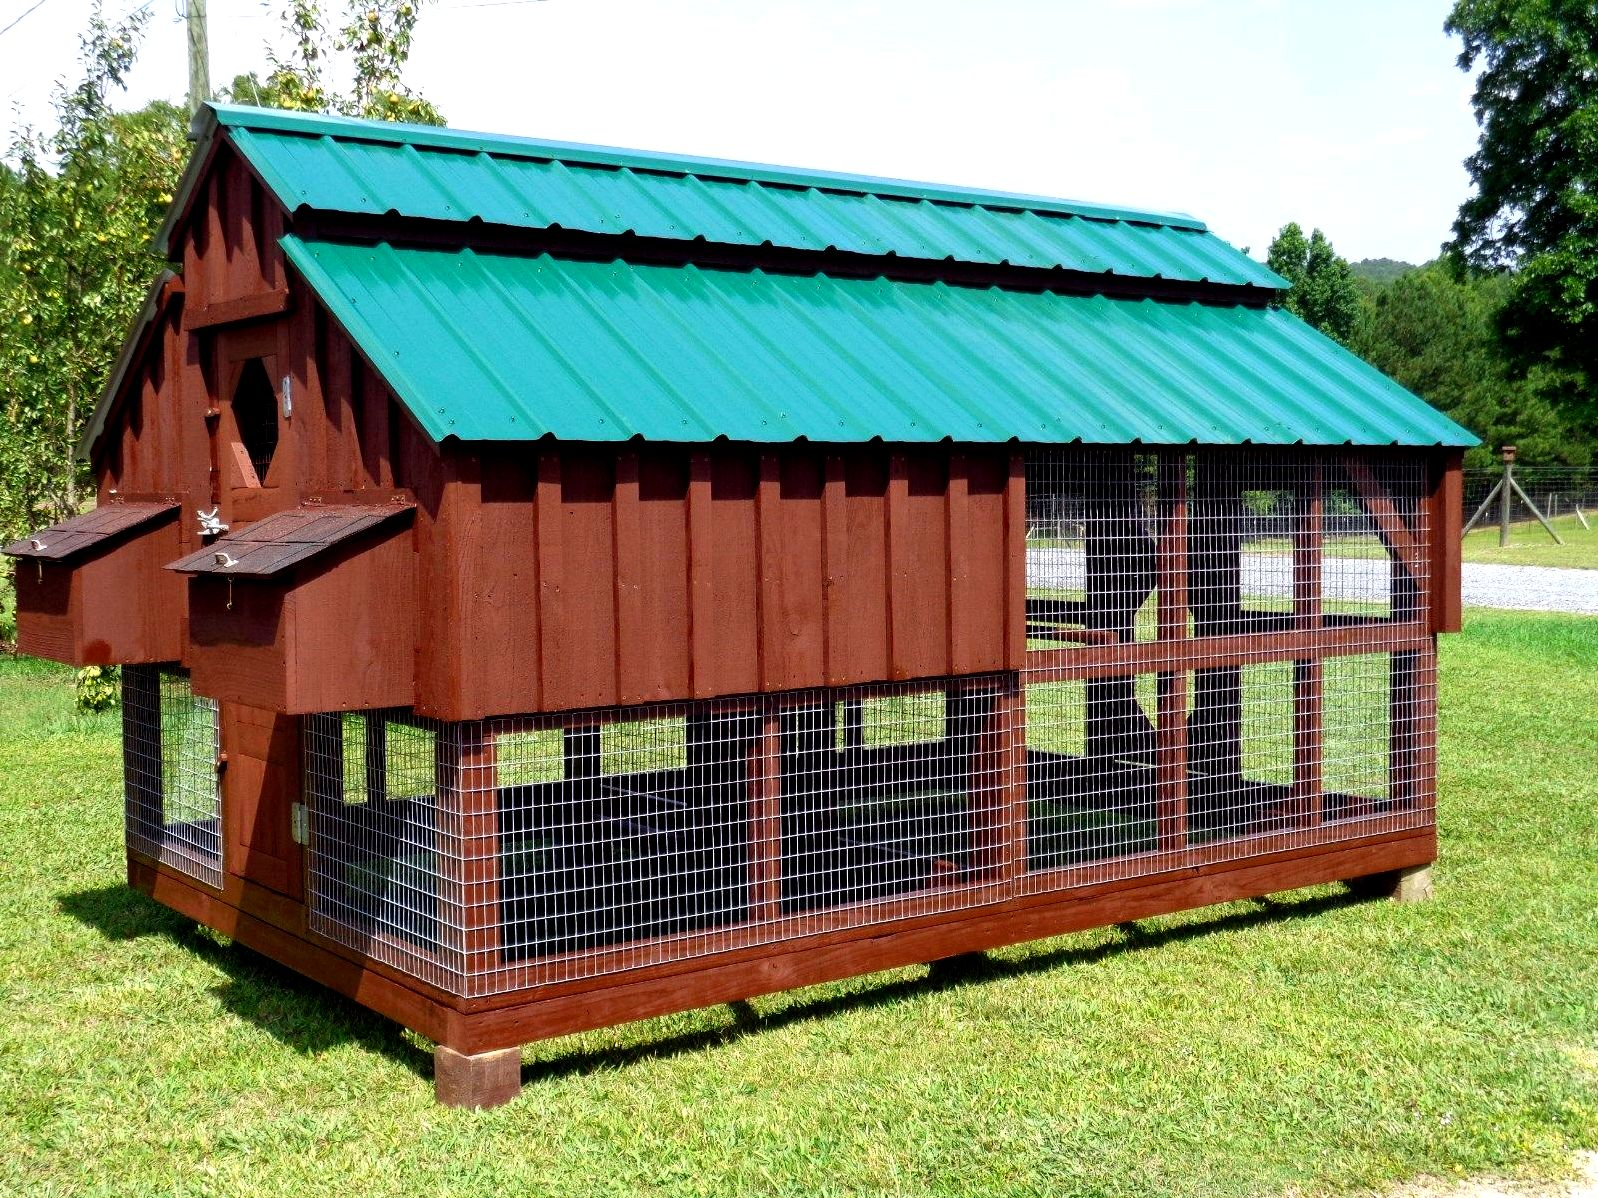 Backyard chicken house designs - how can you choose? than being not big enough